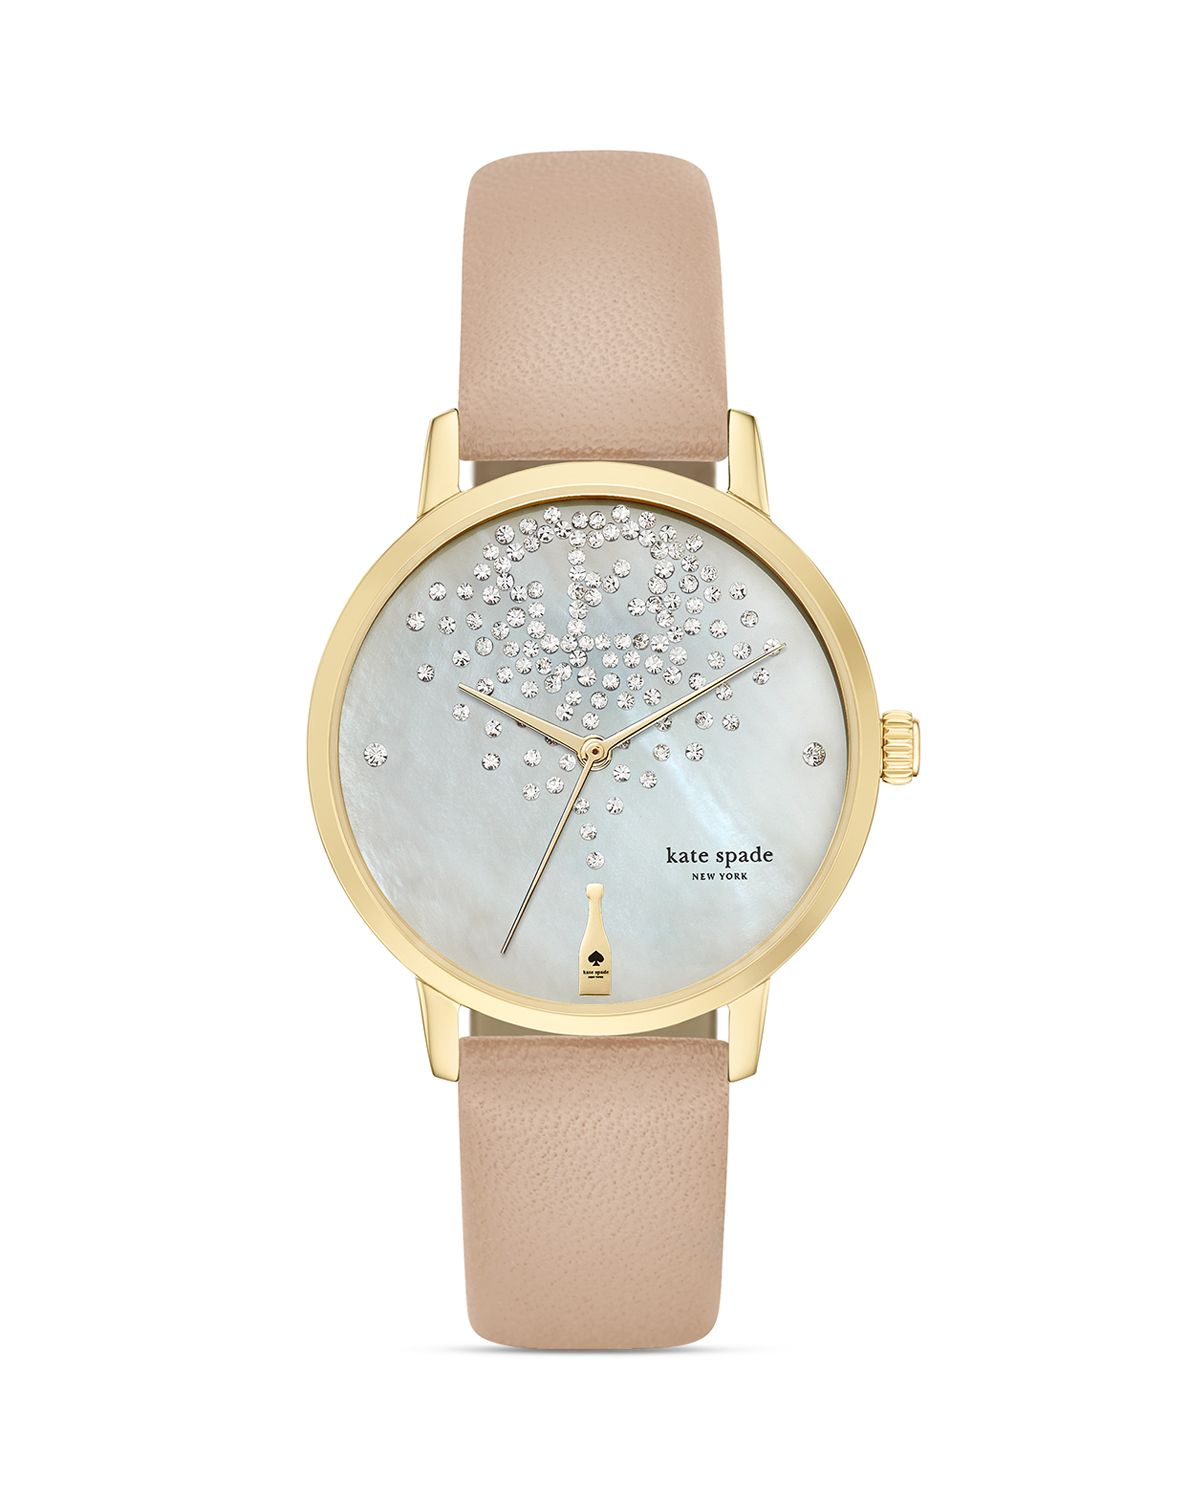 Vachetta Champagne Dial Metro Watch, 34mm by Kate Spade New York